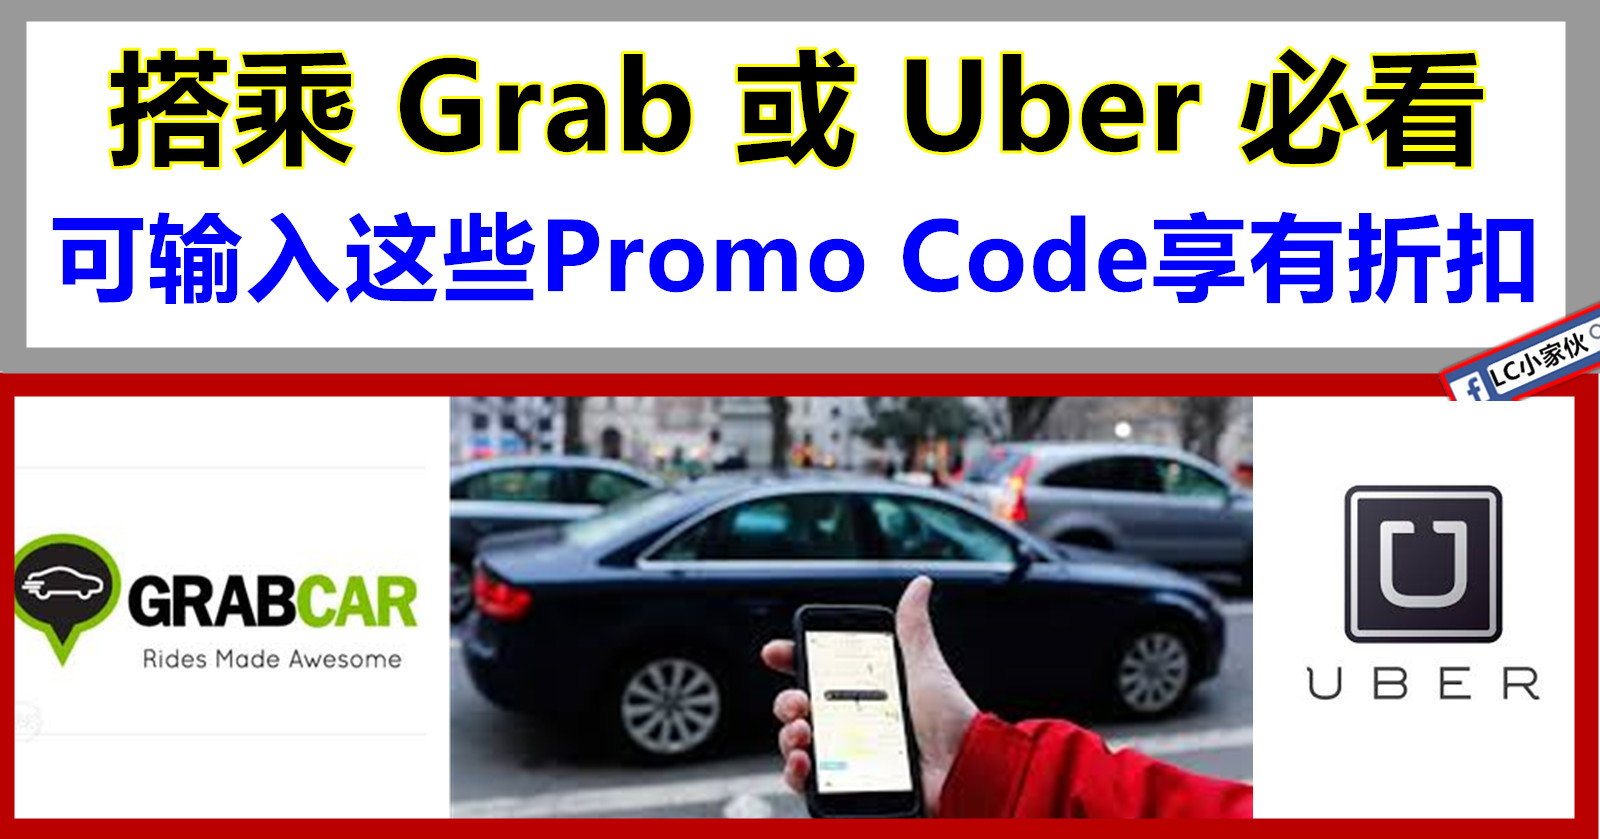 Uber promotional code - Discount jewelry